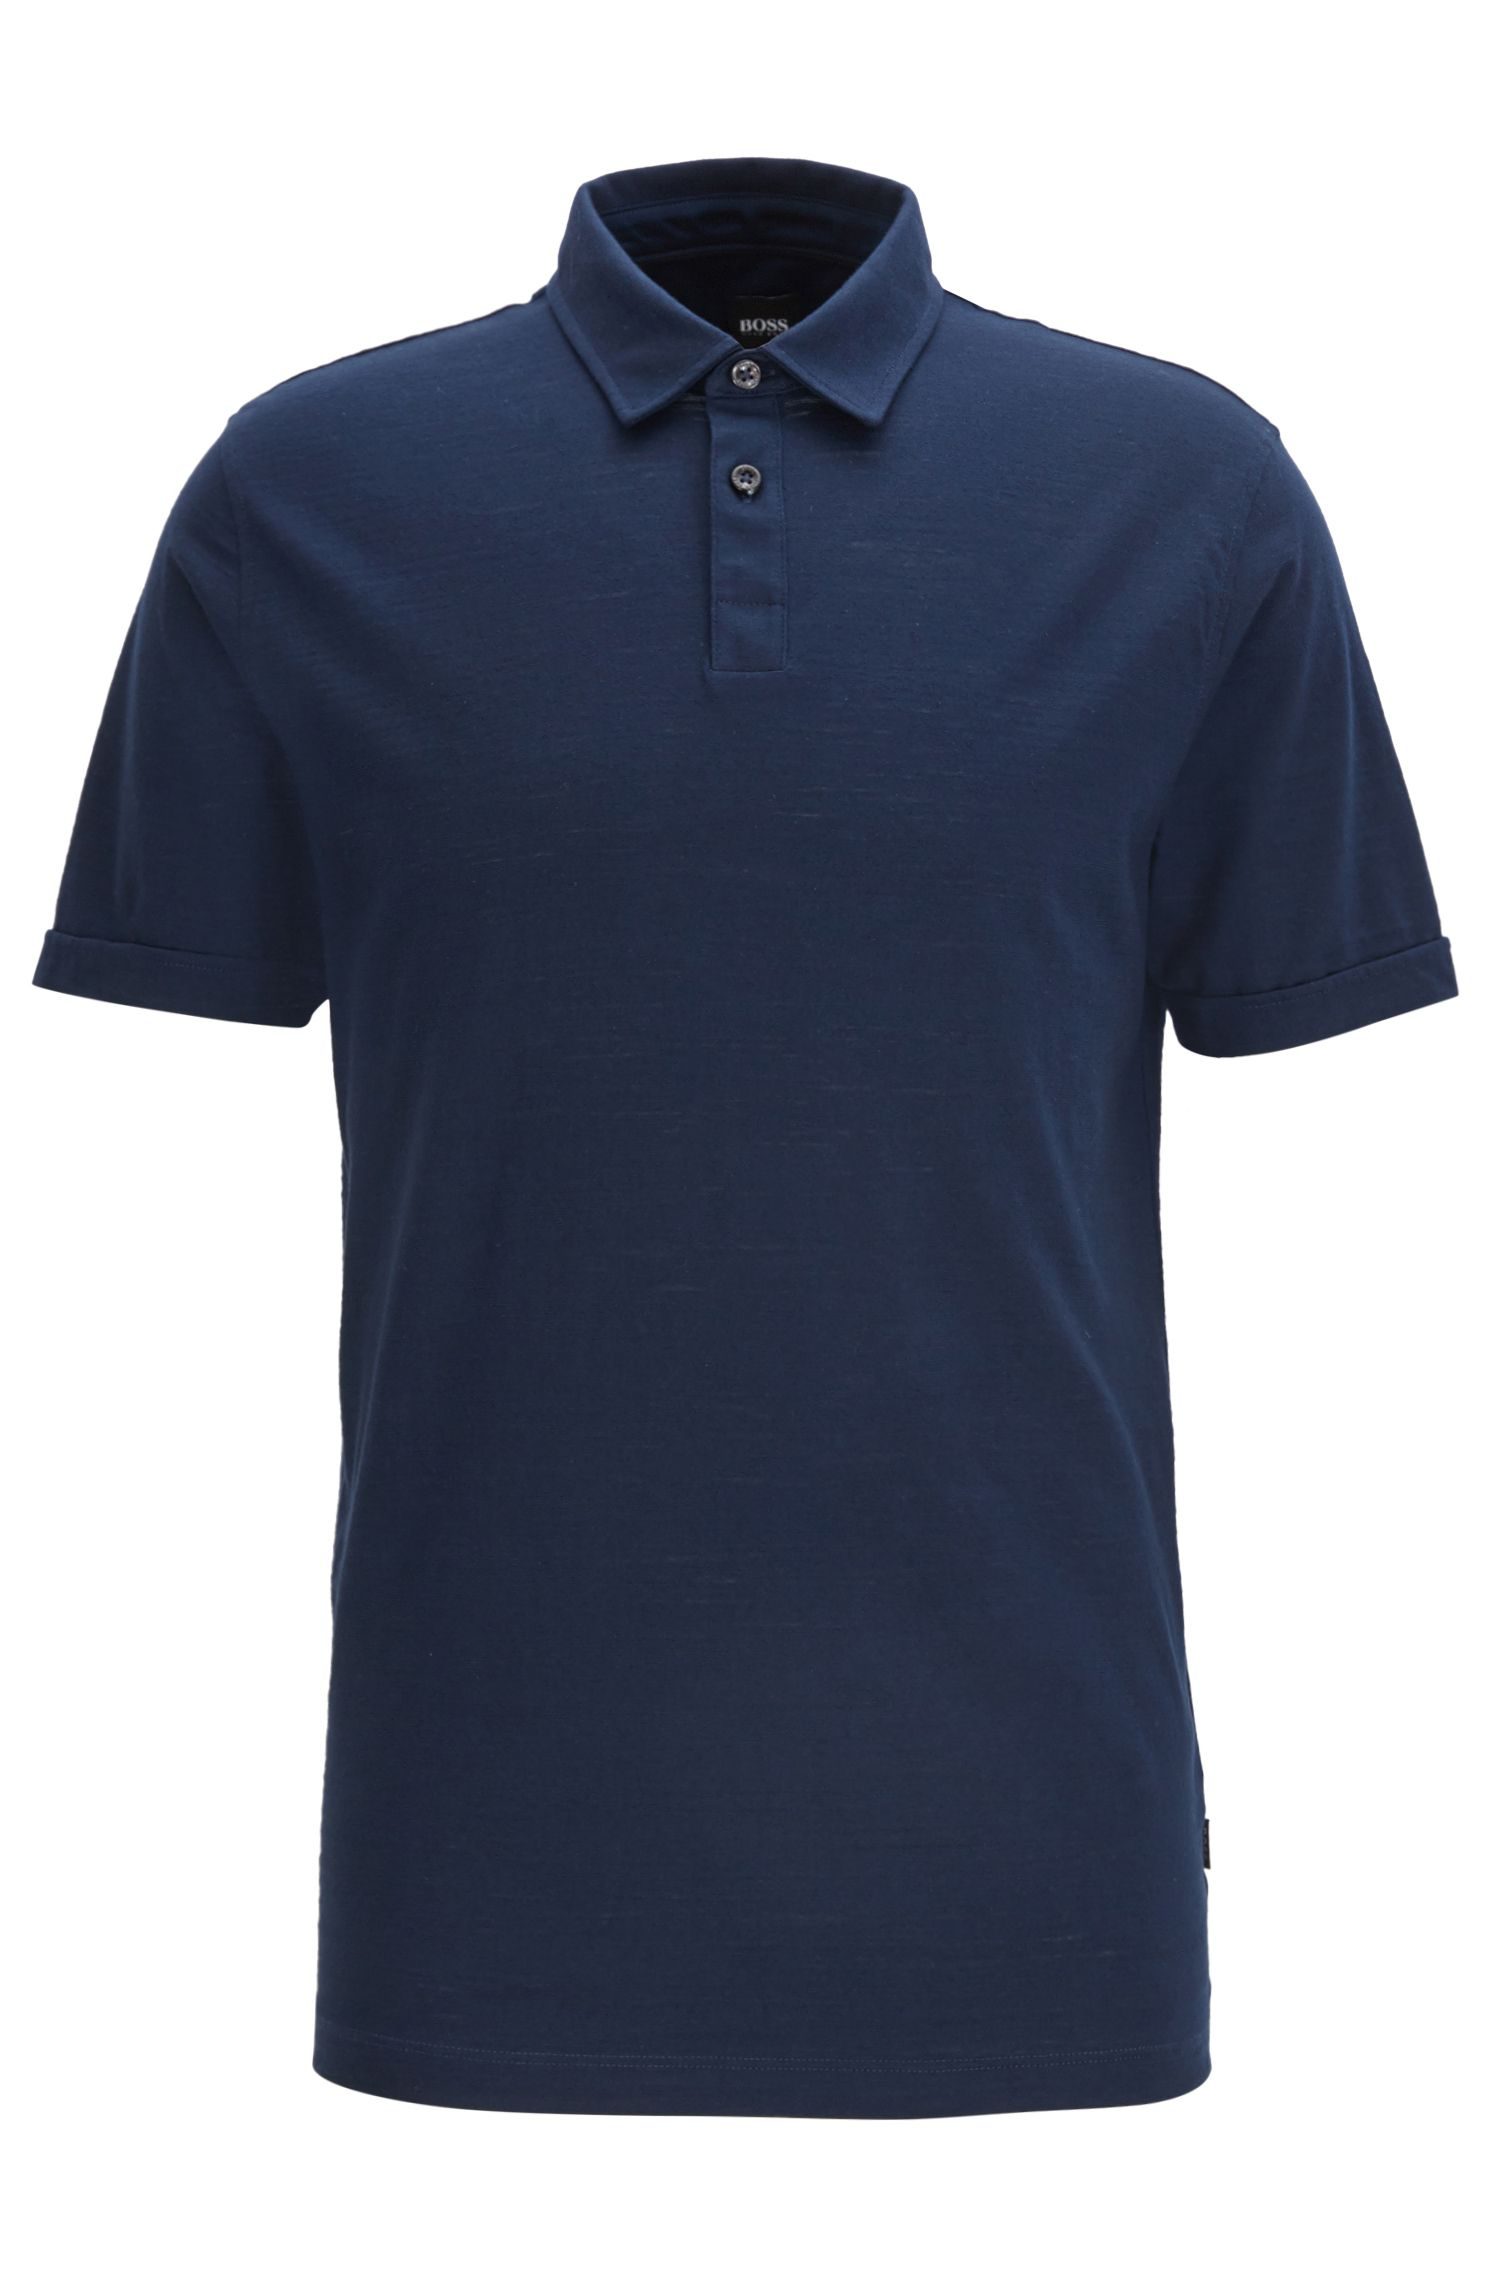 Short-sleeved polo shirt in mercerised single jersey